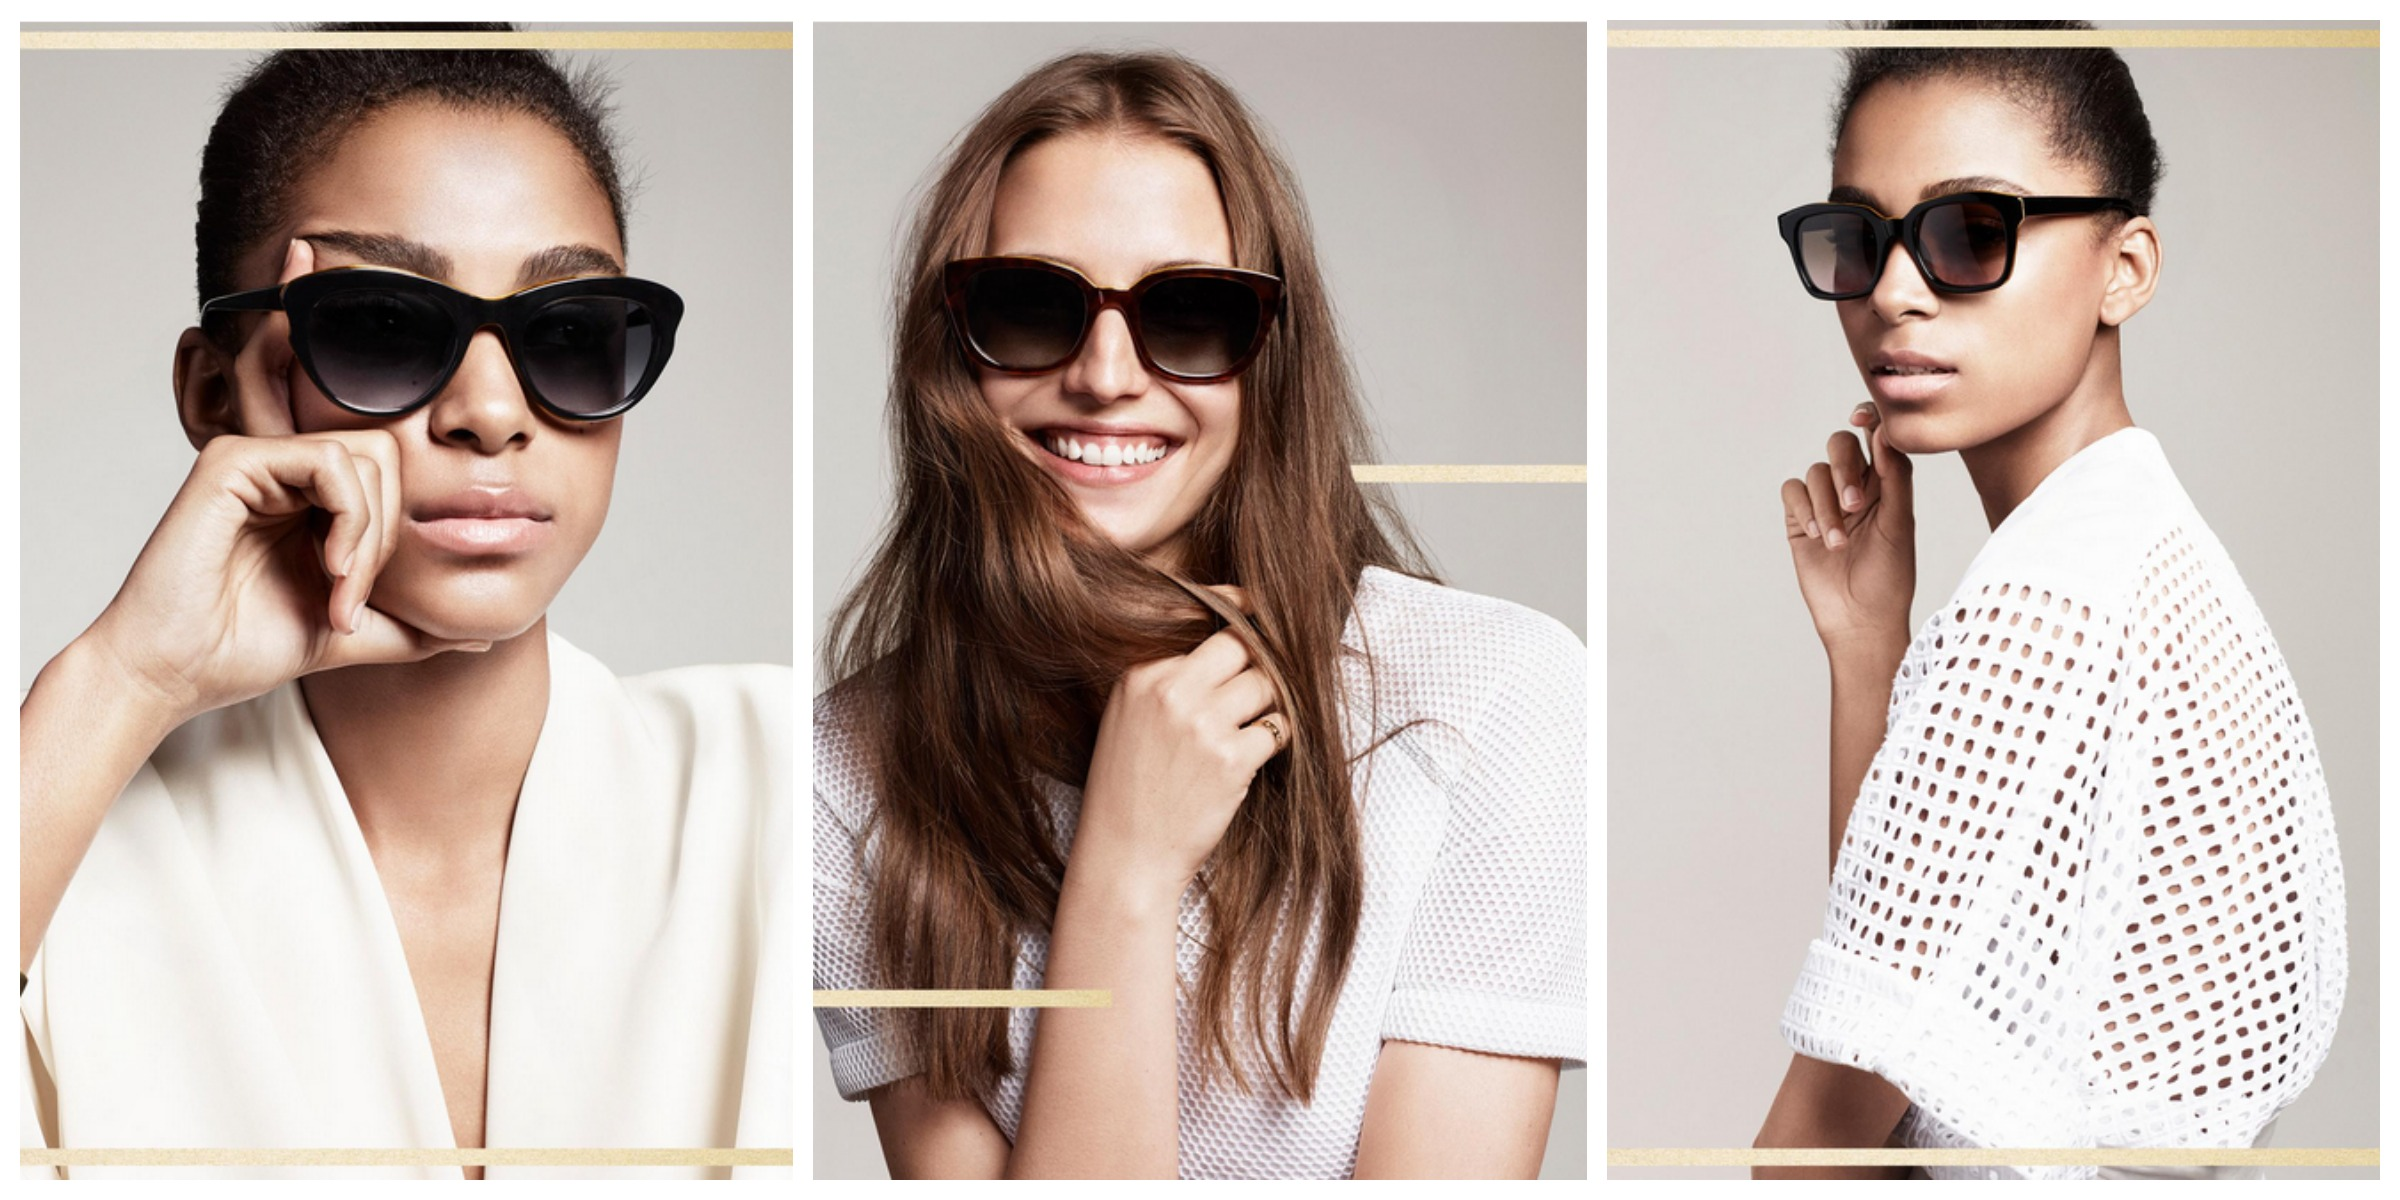 dec5e71c77 Warby Parker s glamorous new sunglasses collection - AOL Lifestyle